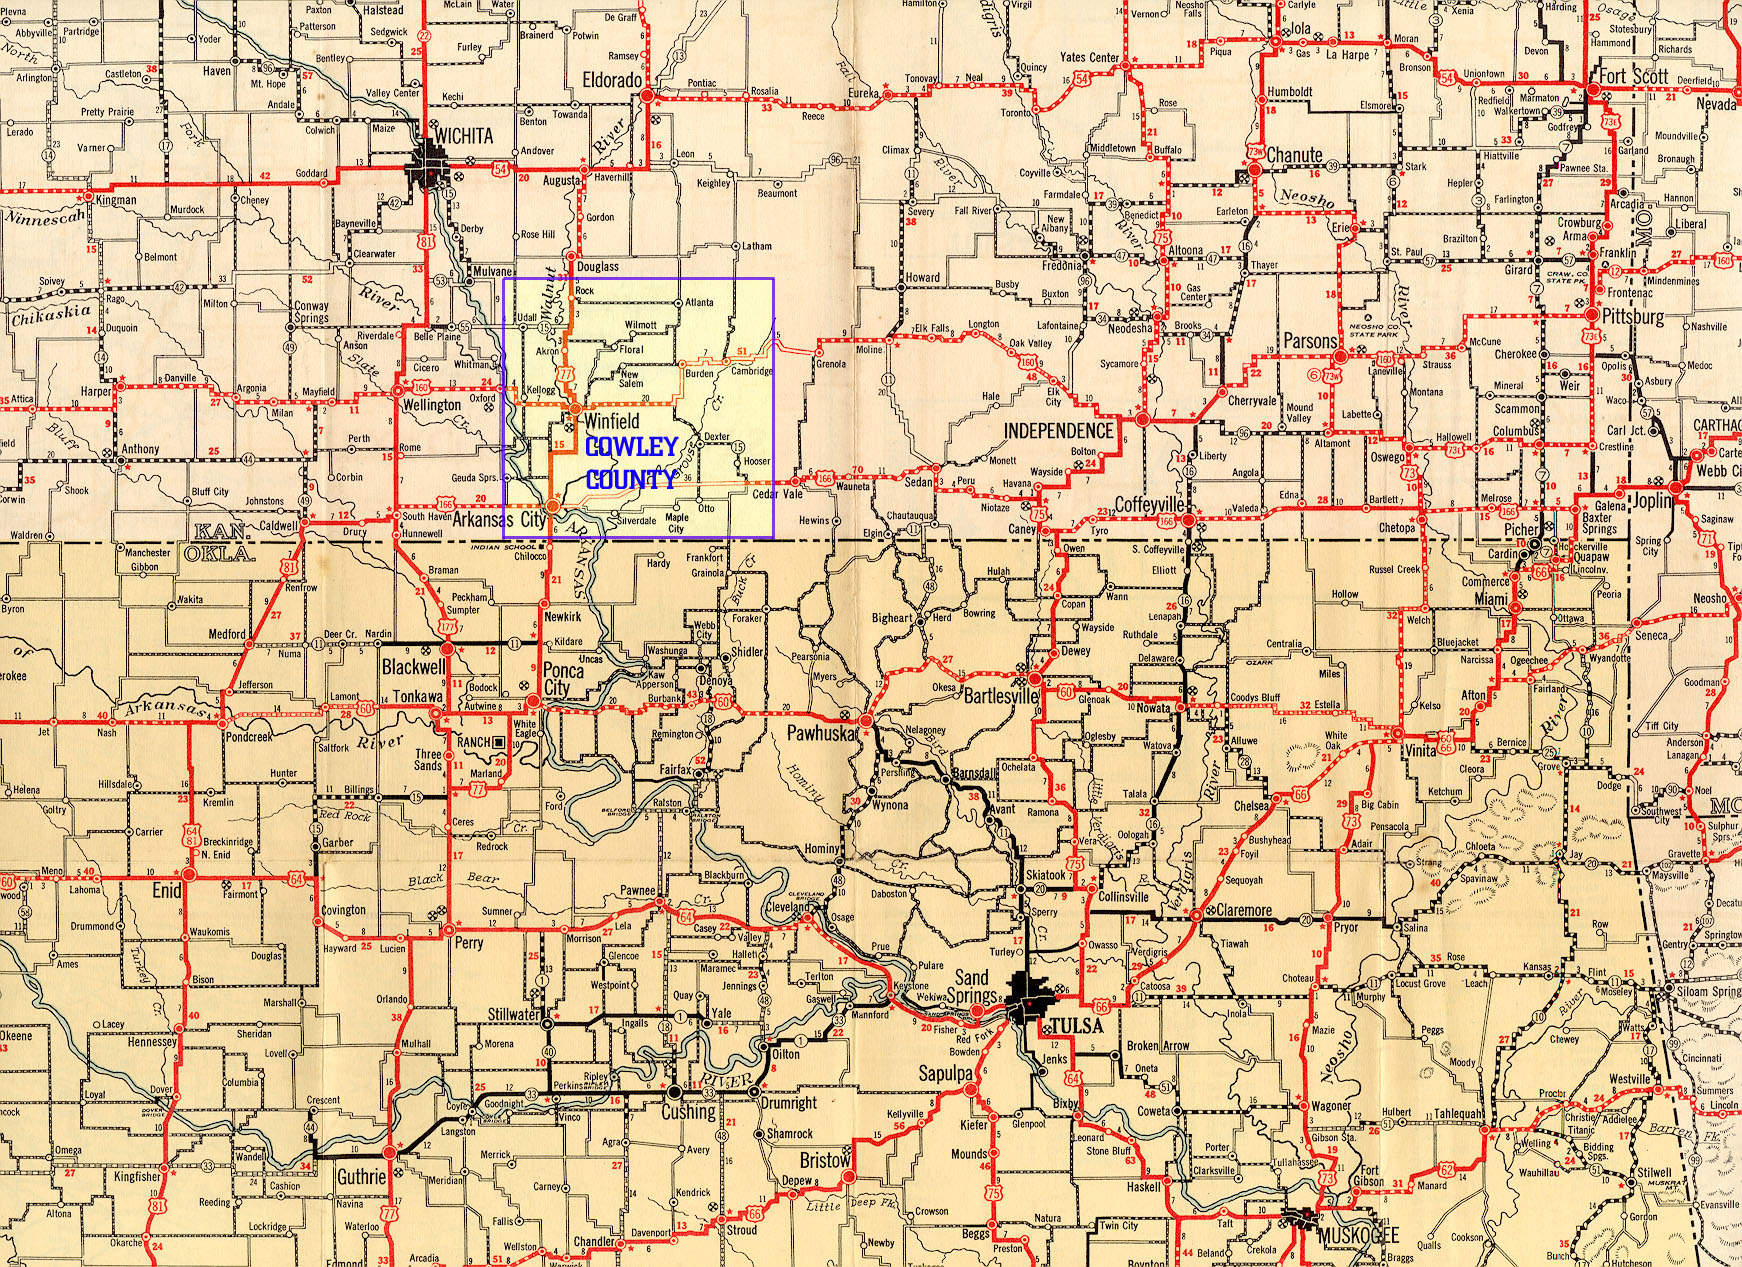 1932 Texaco Highway Map Of Southern Kansas And Northern